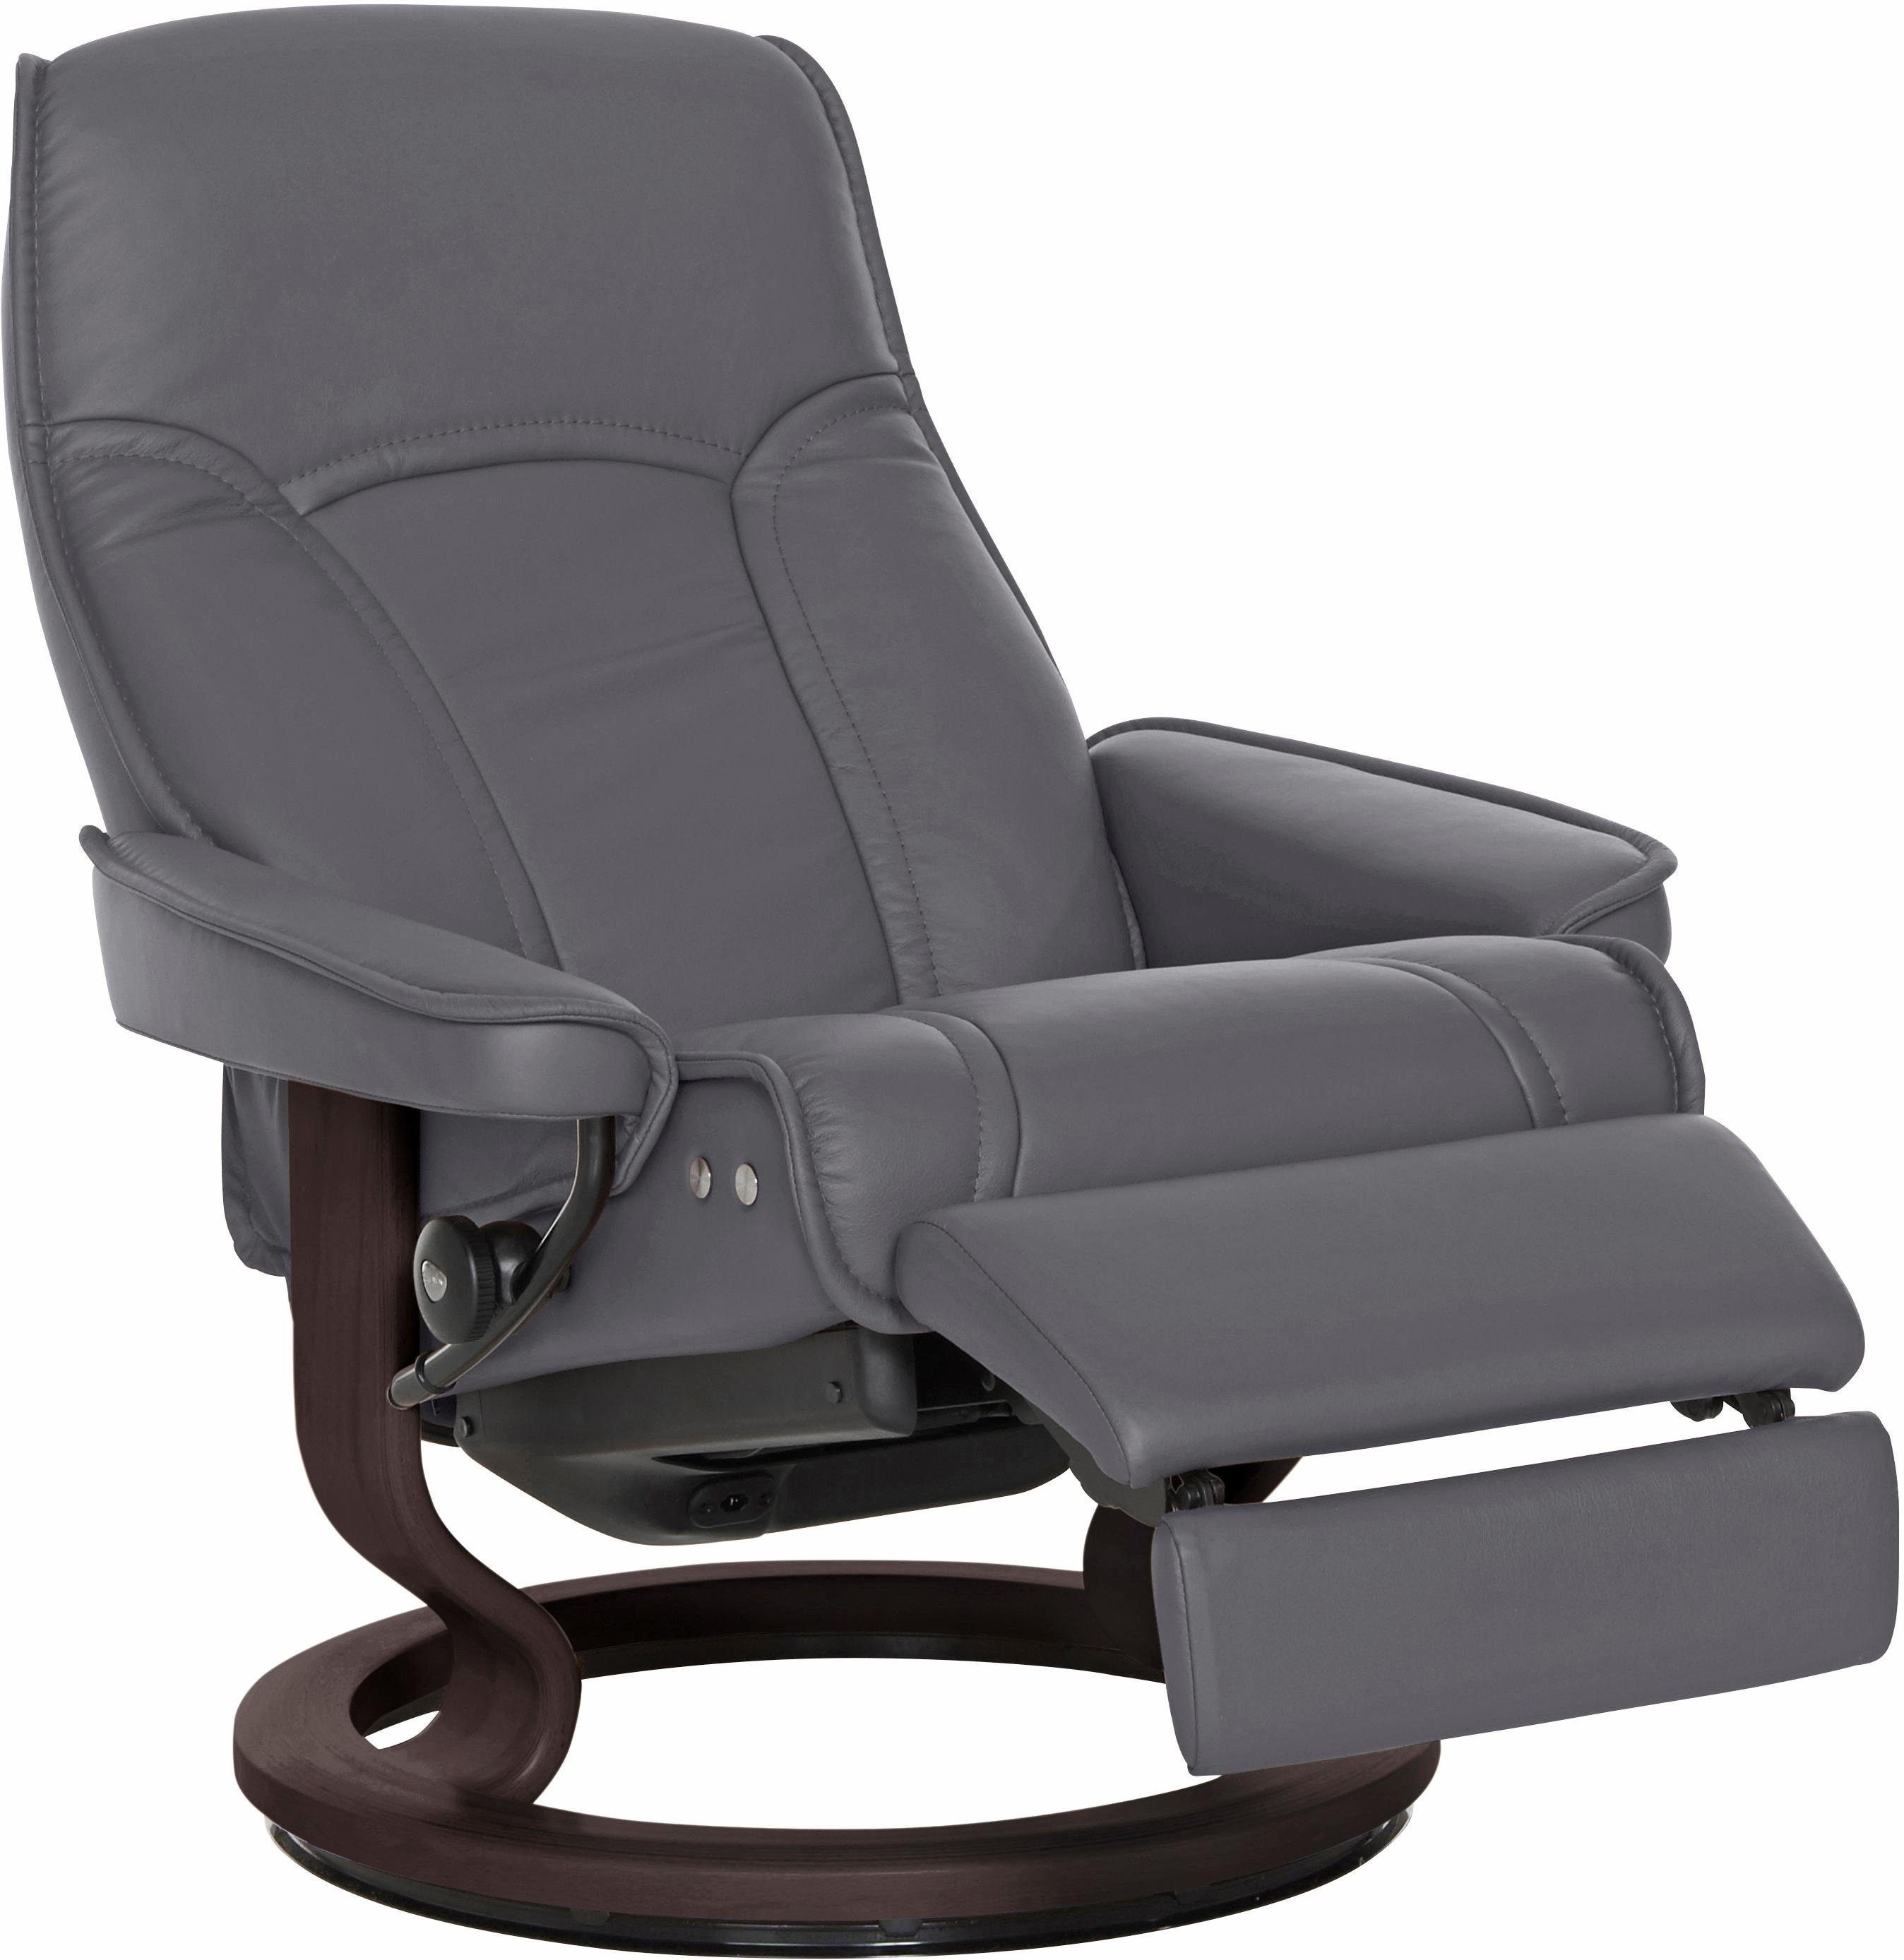 Stressless Sessel Paris High Back Stressless Sessel Bedienung Zuhause Image Idee